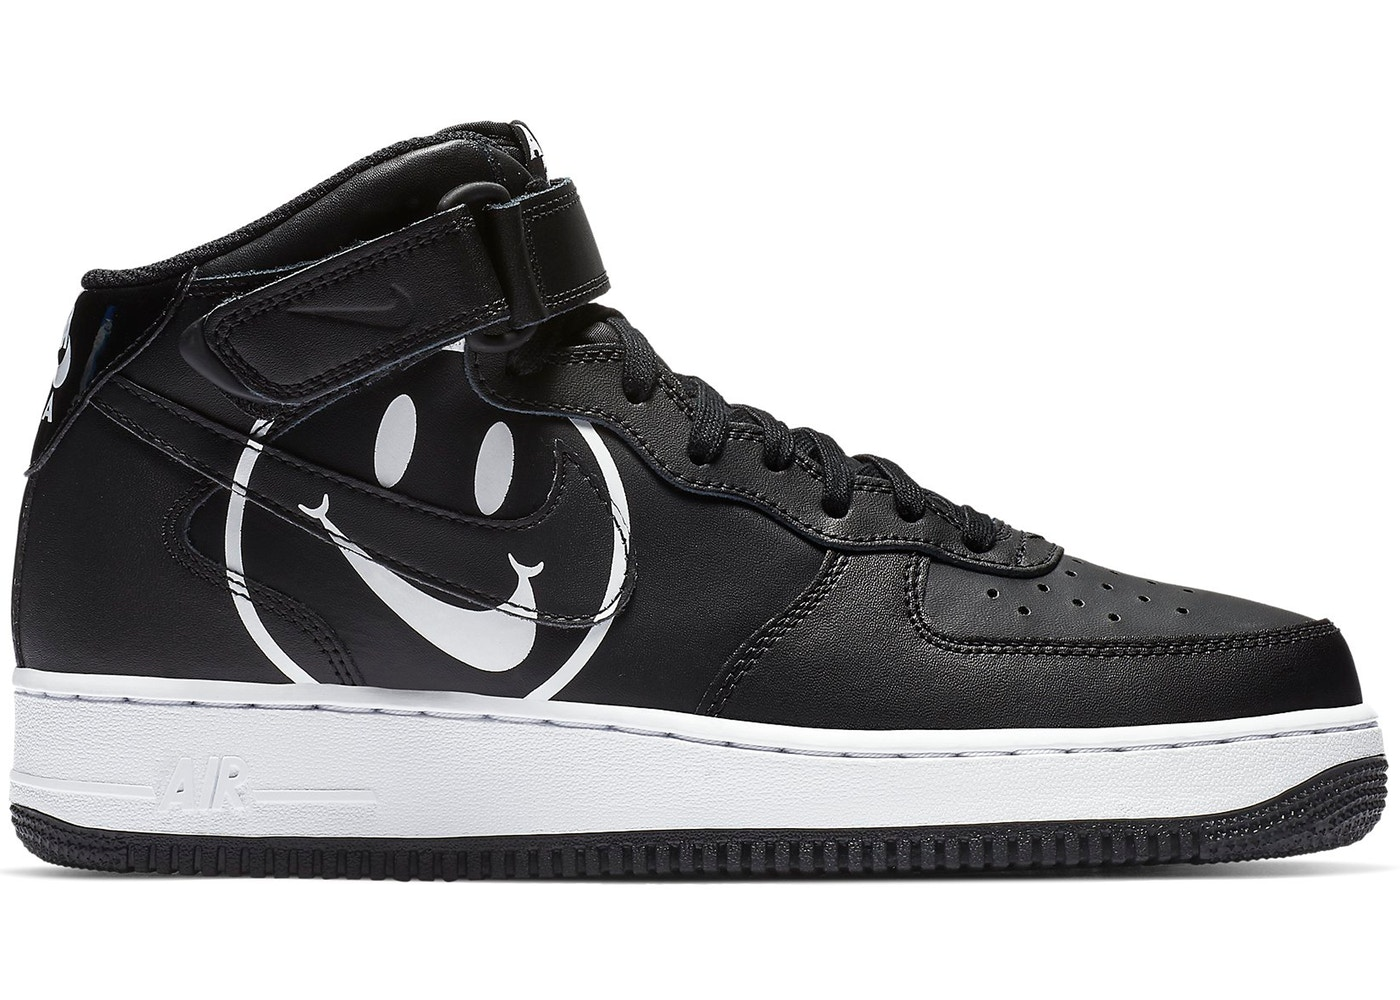 c0345a538 Air Force 1 Mid Have a Nike Day Black - AO2444-001